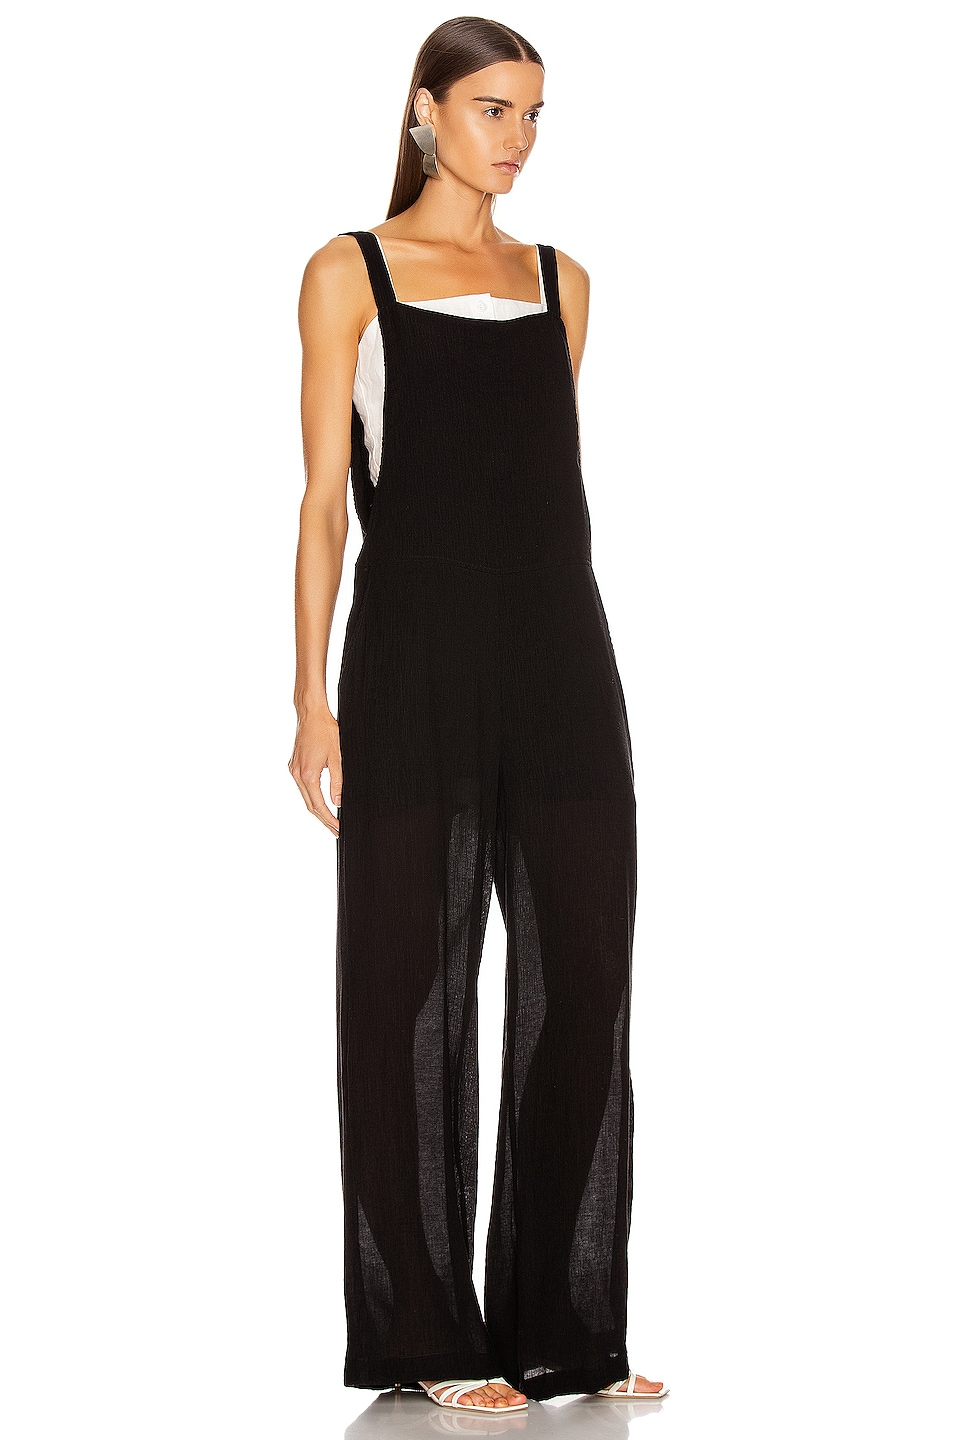 Image 2 of The Range Vapor Voile Overalls in Faded Black